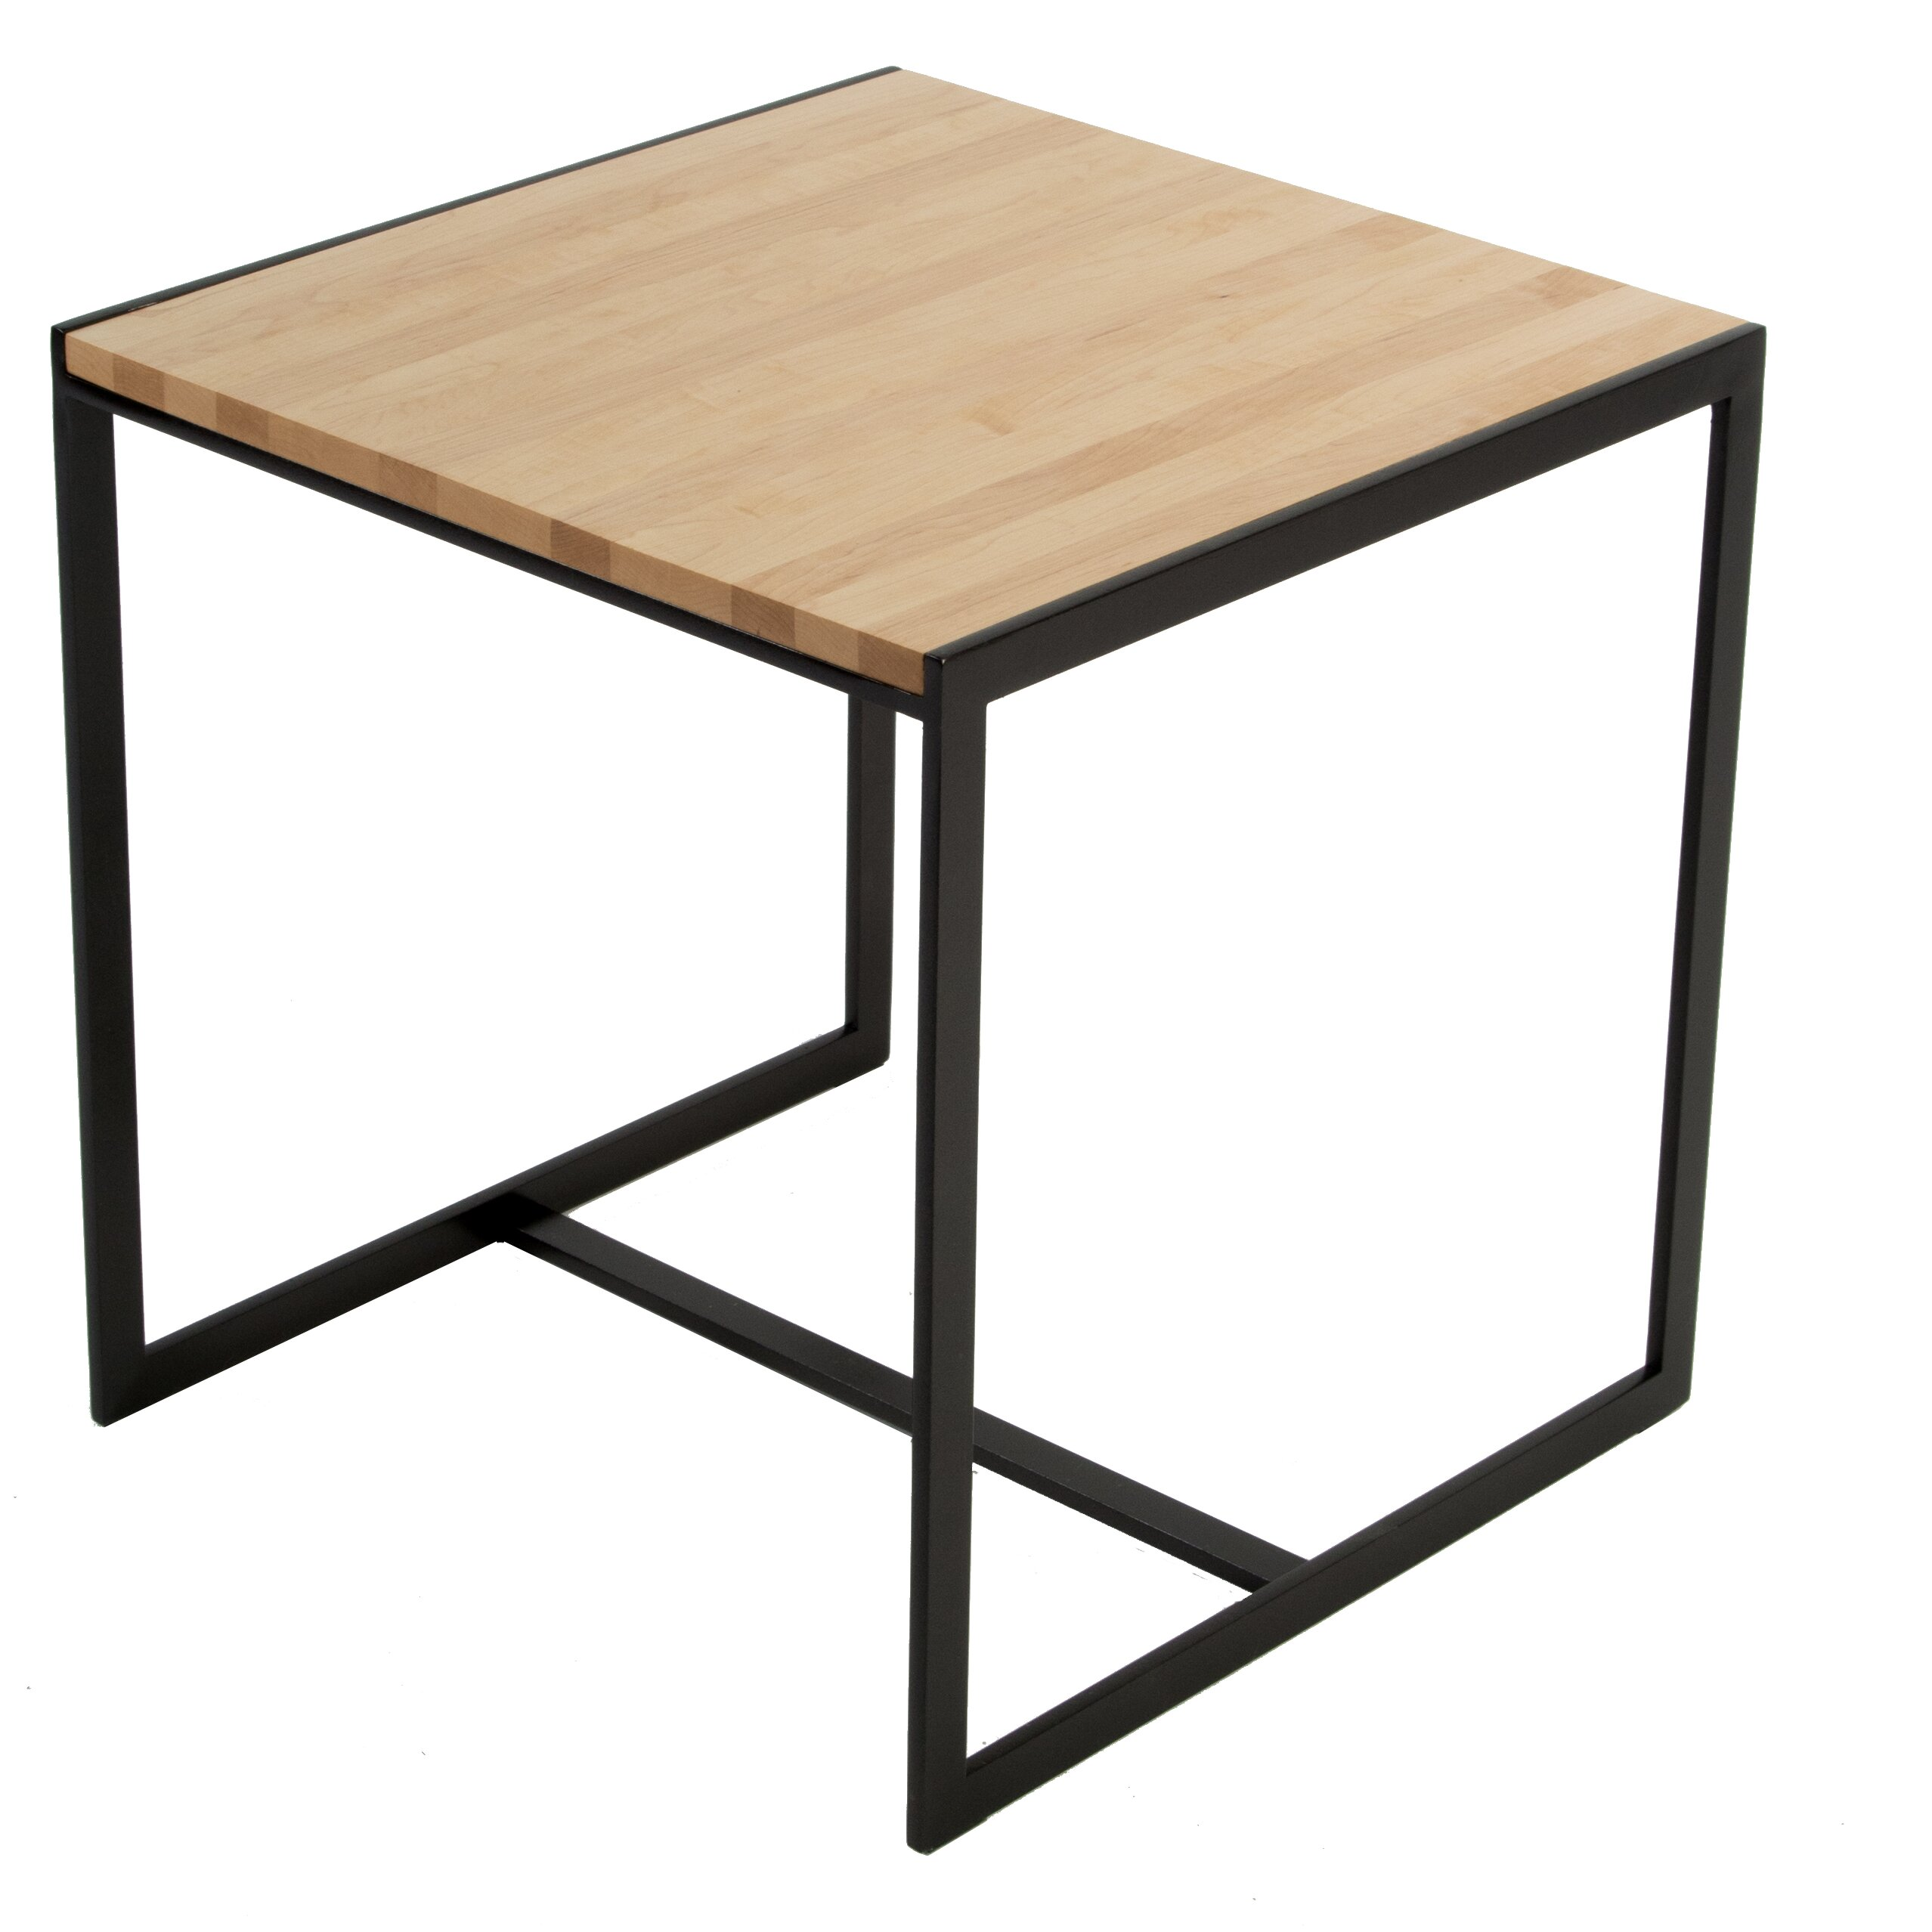 Sterk Furniture pany Ansted End Table